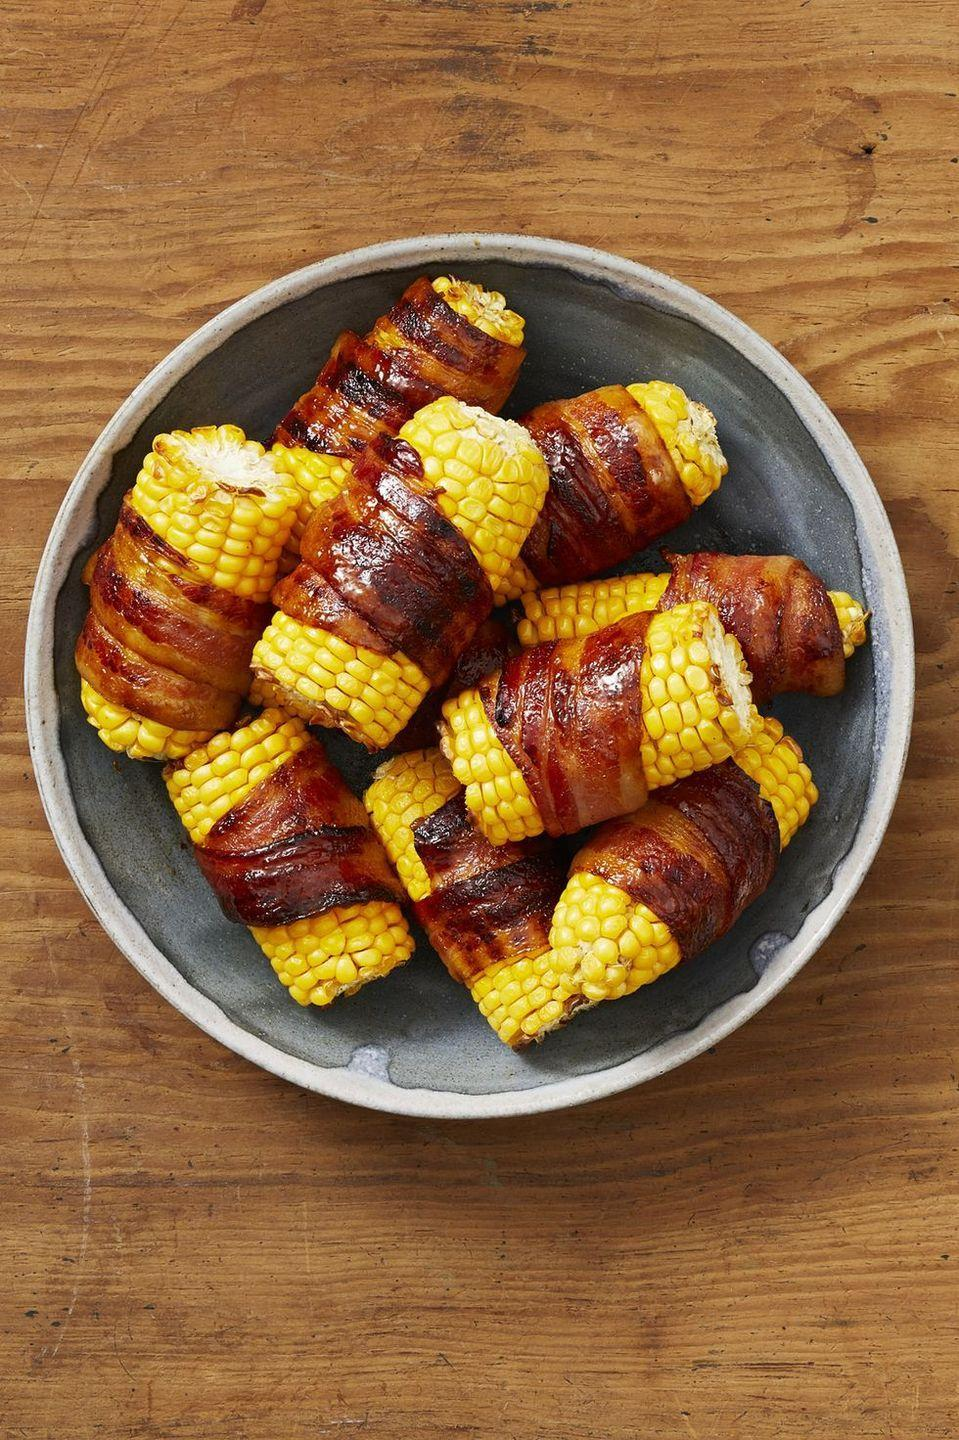 """<p>There's nothing quite like fresh corn on the cob during the summer, and we all know bacon makes everything better, so this is the perfect pair. </p><p><strong><em>Get the recipe at <a href=""""https://www.thepioneerwoman.com/food-cooking/recipes/a32905619/bacon-wrapped-corn-on-the-cob-recipe/"""" rel=""""nofollow noopener"""" target=""""_blank"""" data-ylk=""""slk:The Pioneer Woman."""" class=""""link rapid-noclick-resp"""">The Pioneer Woman. </a></em></strong></p>"""